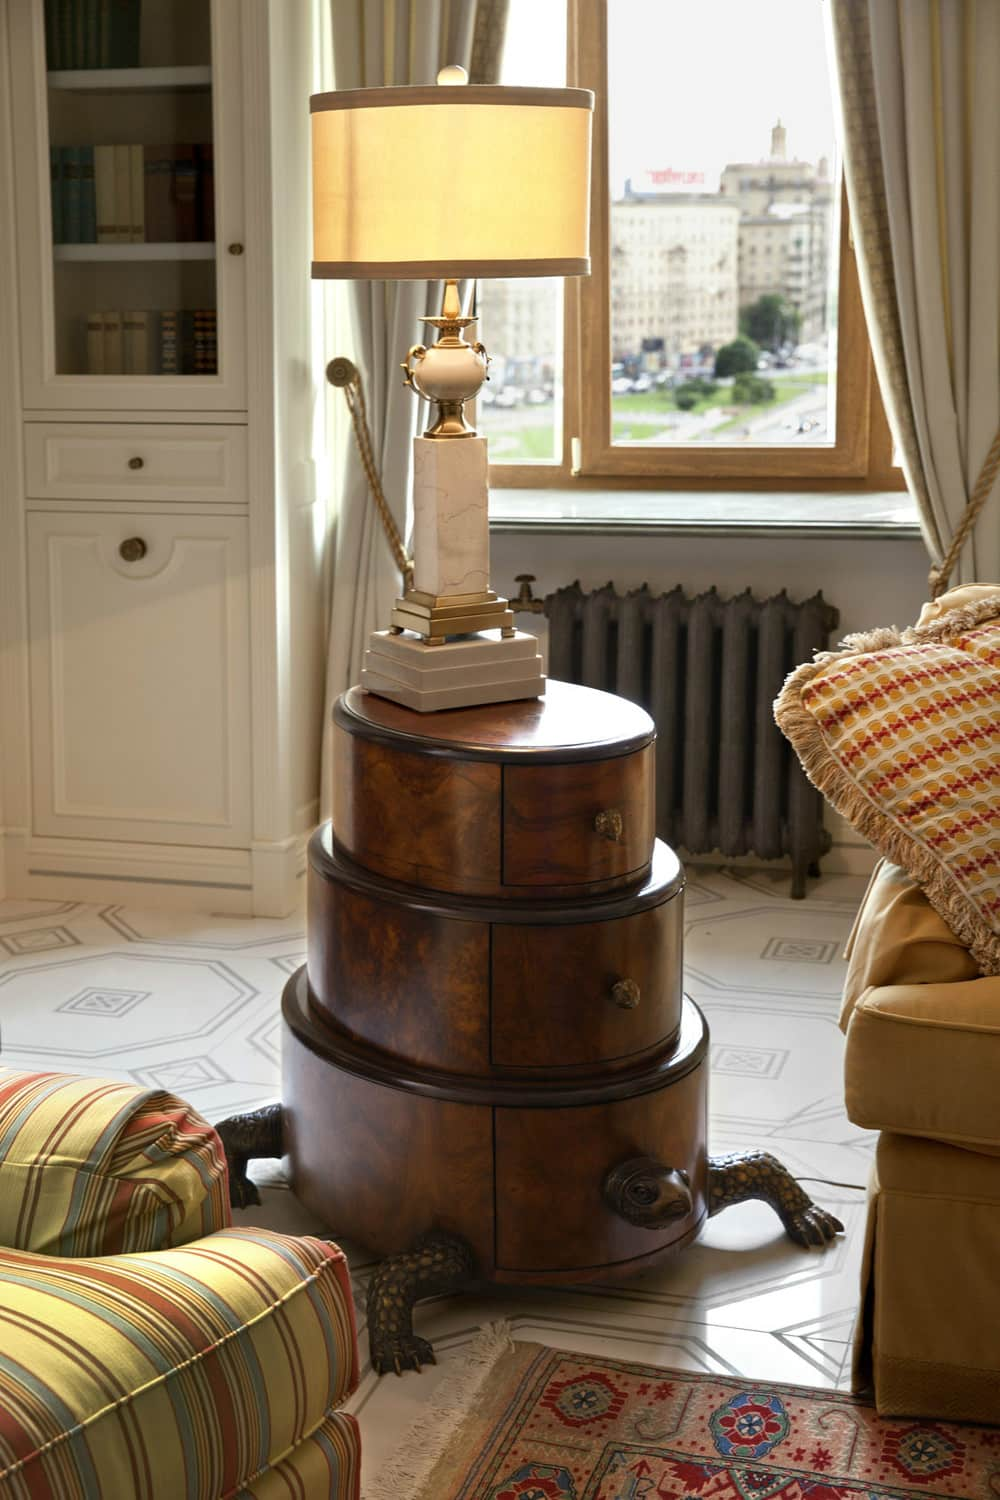 1920s Interior Design in Action: Real Apartment in Deep Retro. Unusual three-tier storage box in the form of tortoise